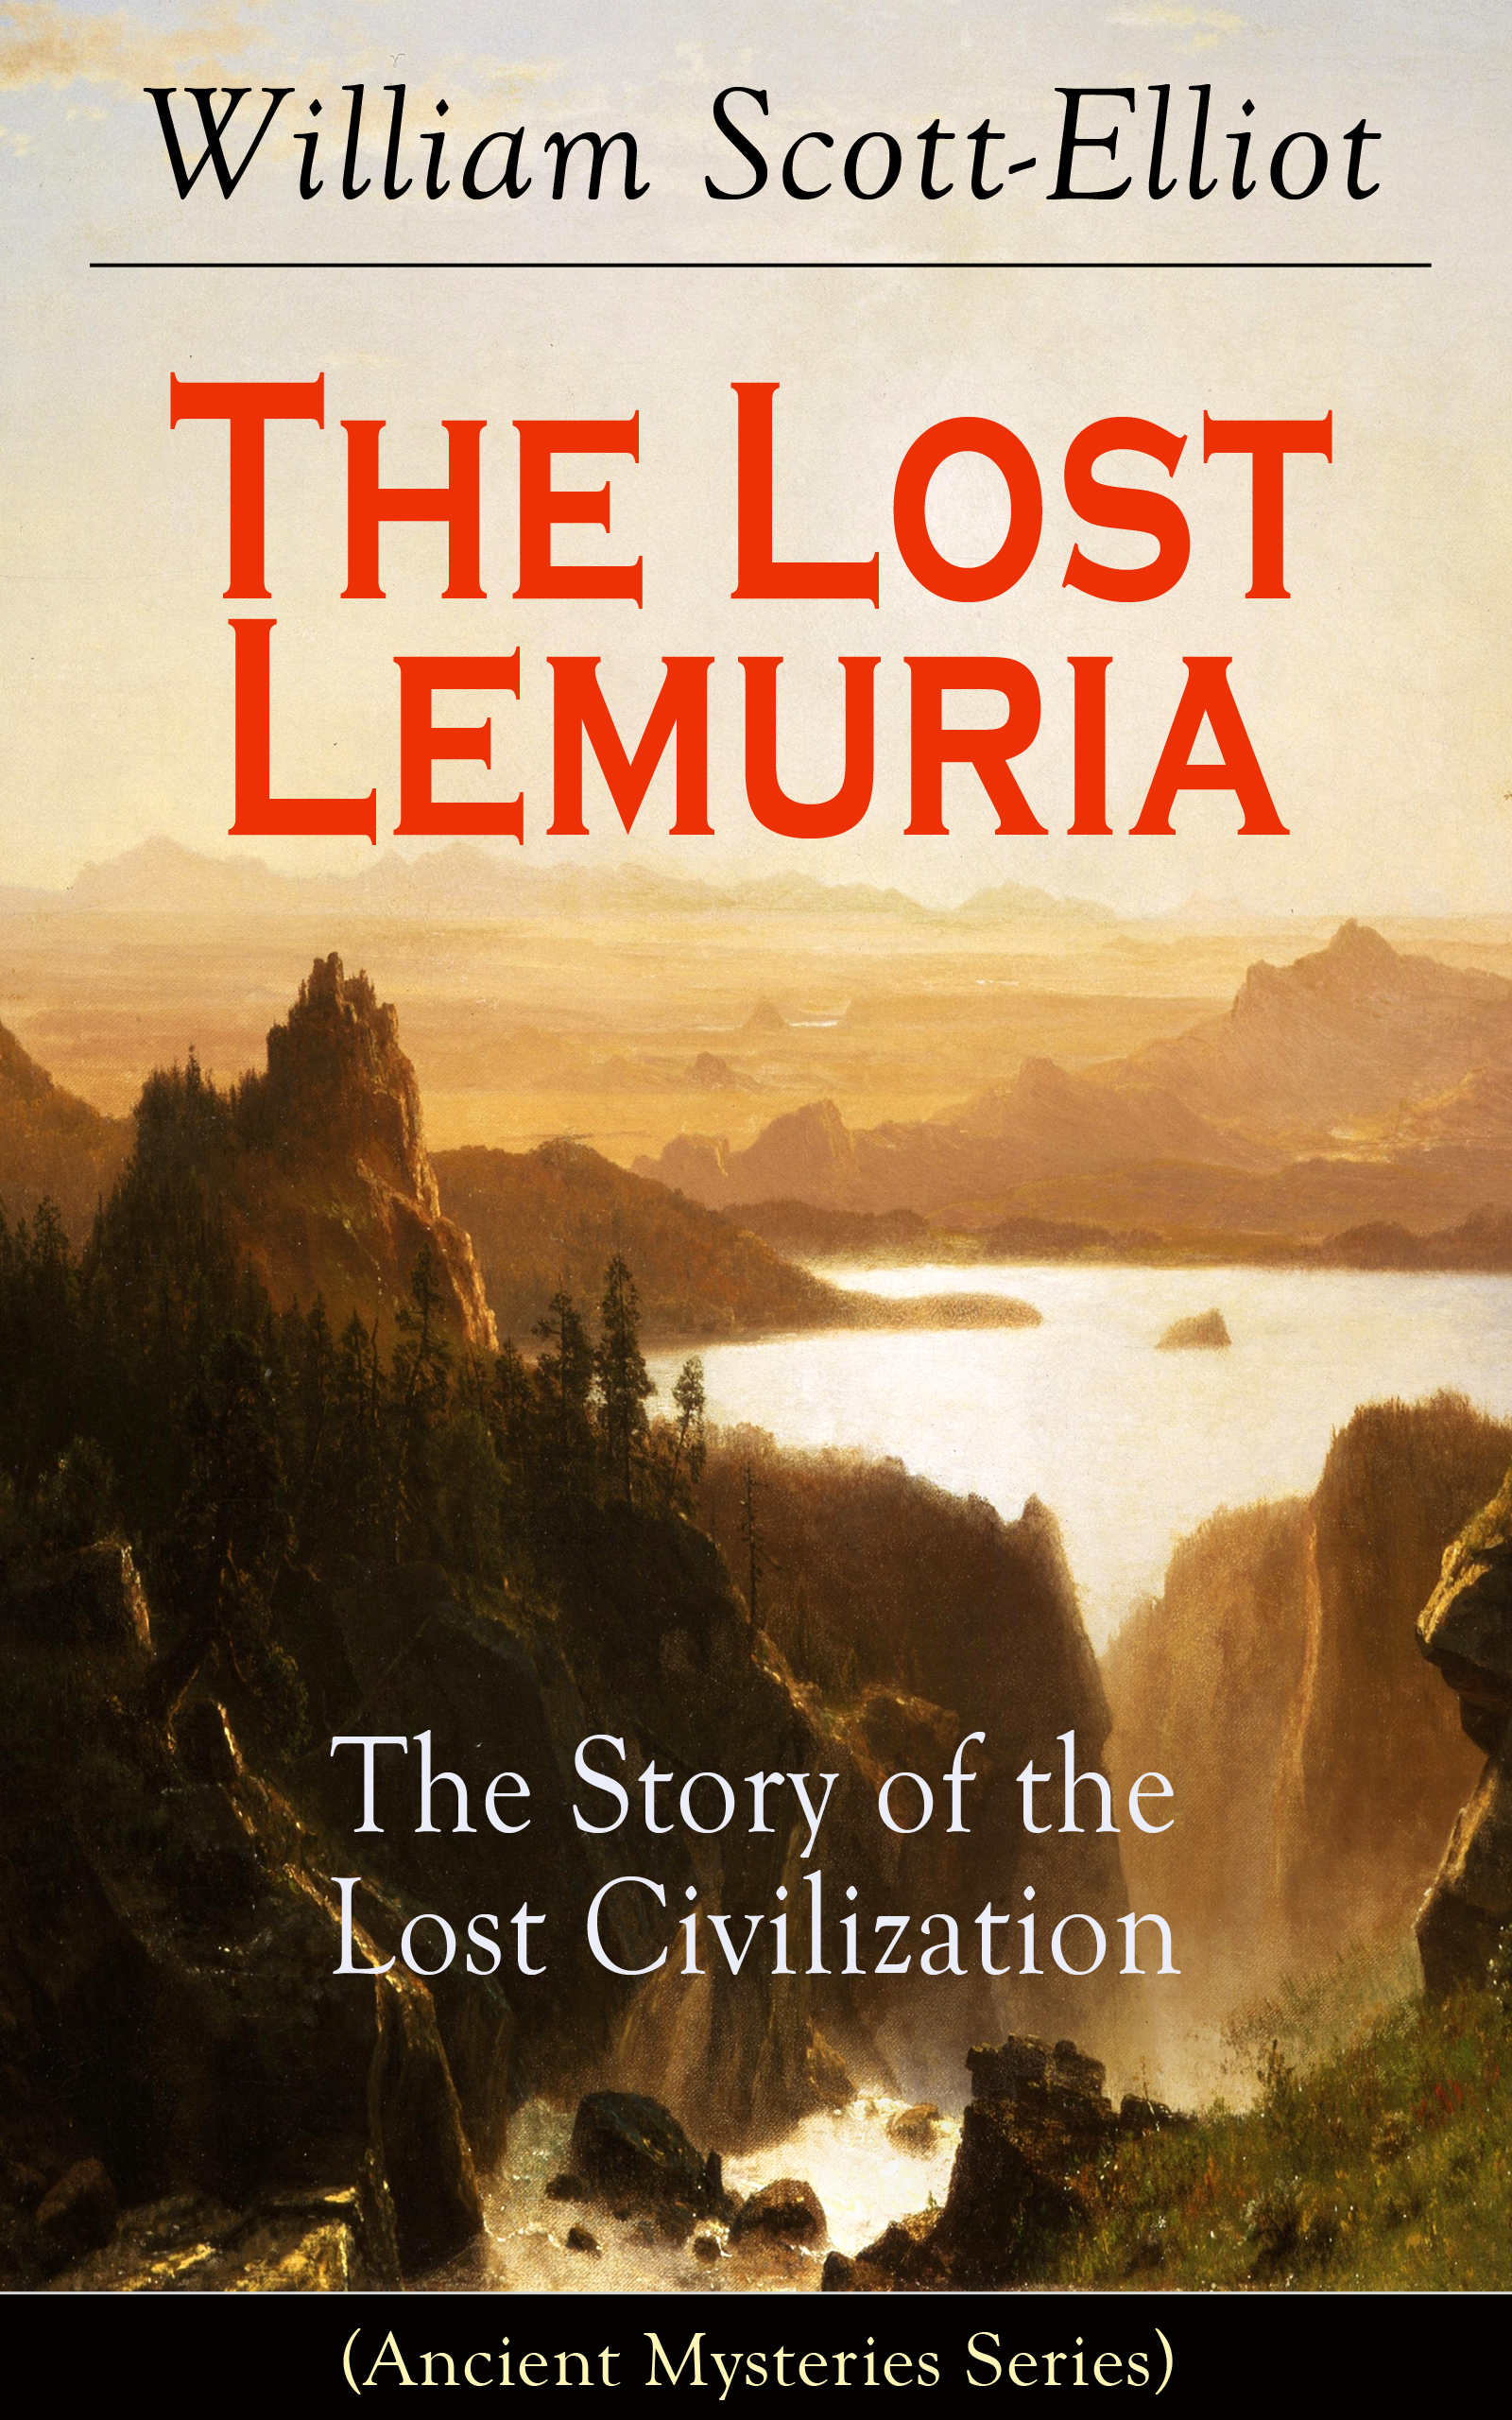 цена на William Scott-Elliot The Lost Lemuria - The Story of the Lost Civilization (Ancient Mysteries Series)